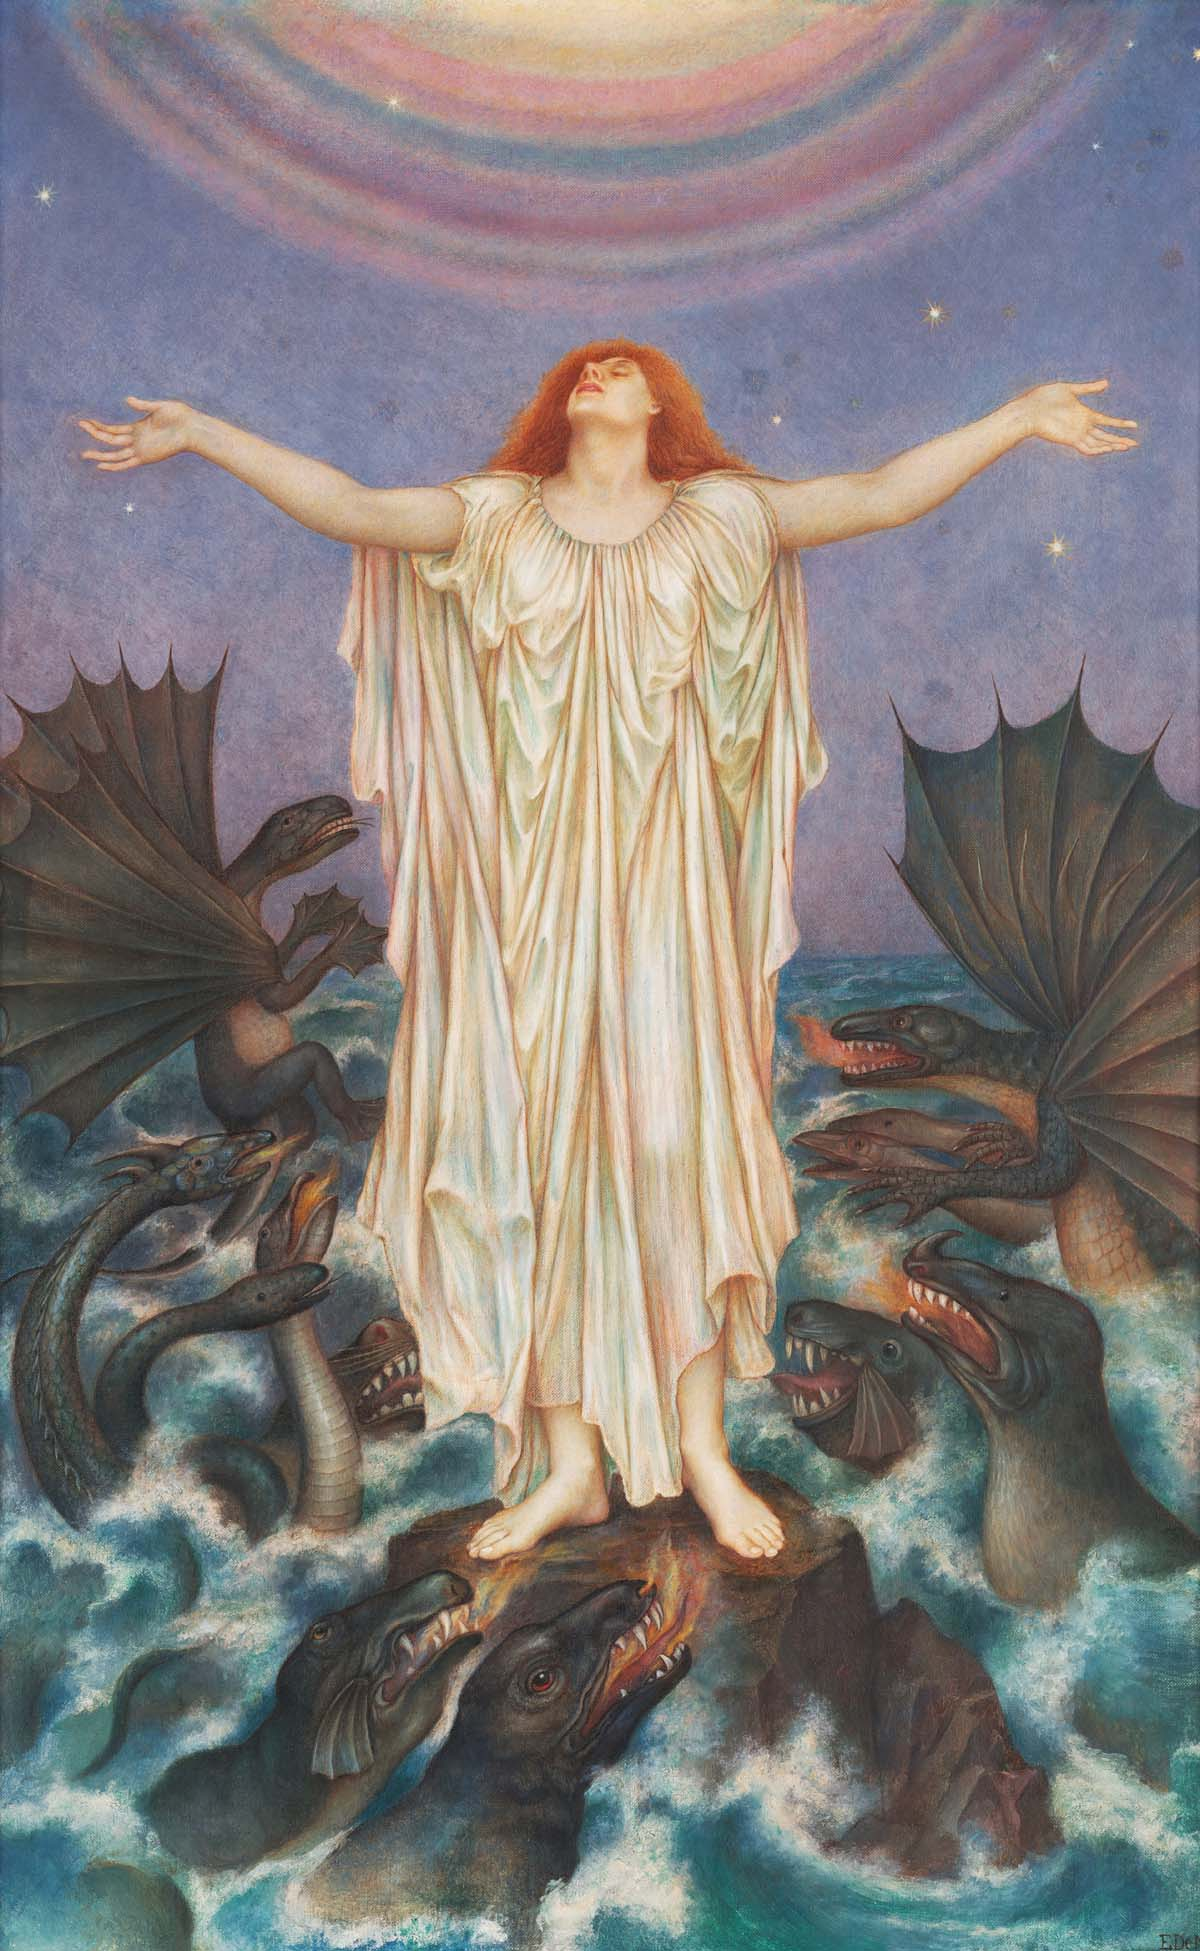 painting of a floating female figure above an ocean of sea monsters